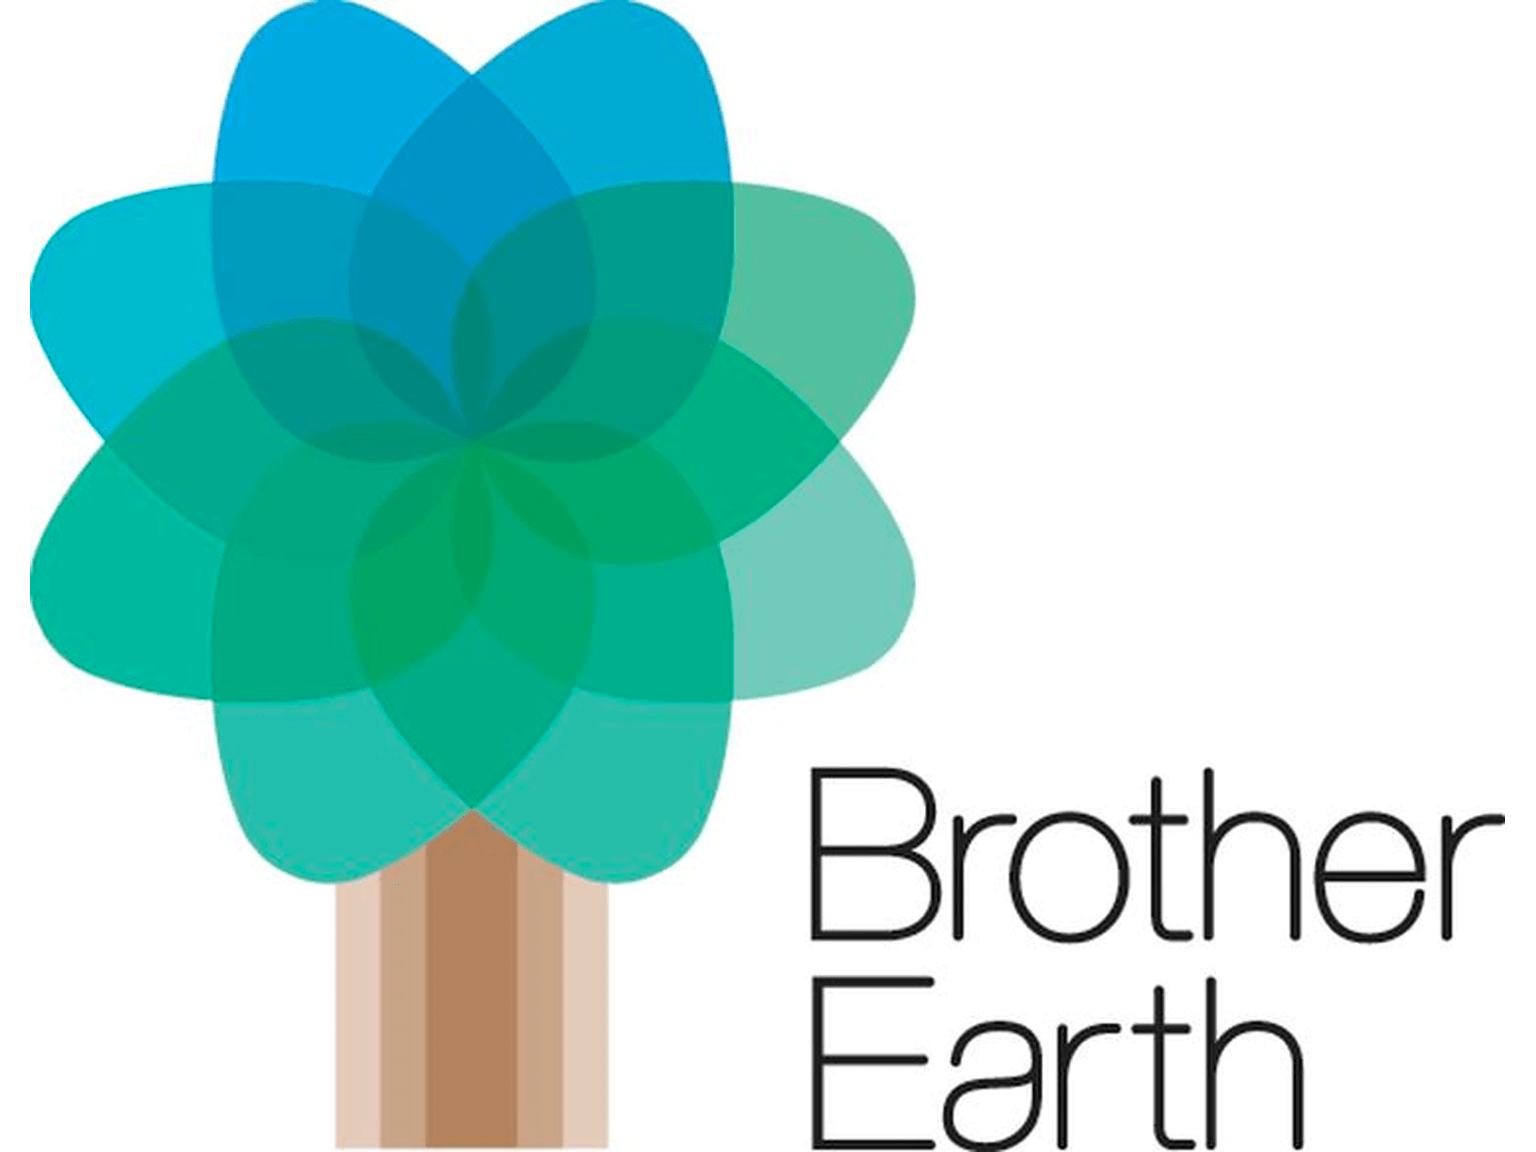 Logo dell'iniziativa per la tutela dell'ambiente  Brother Earth